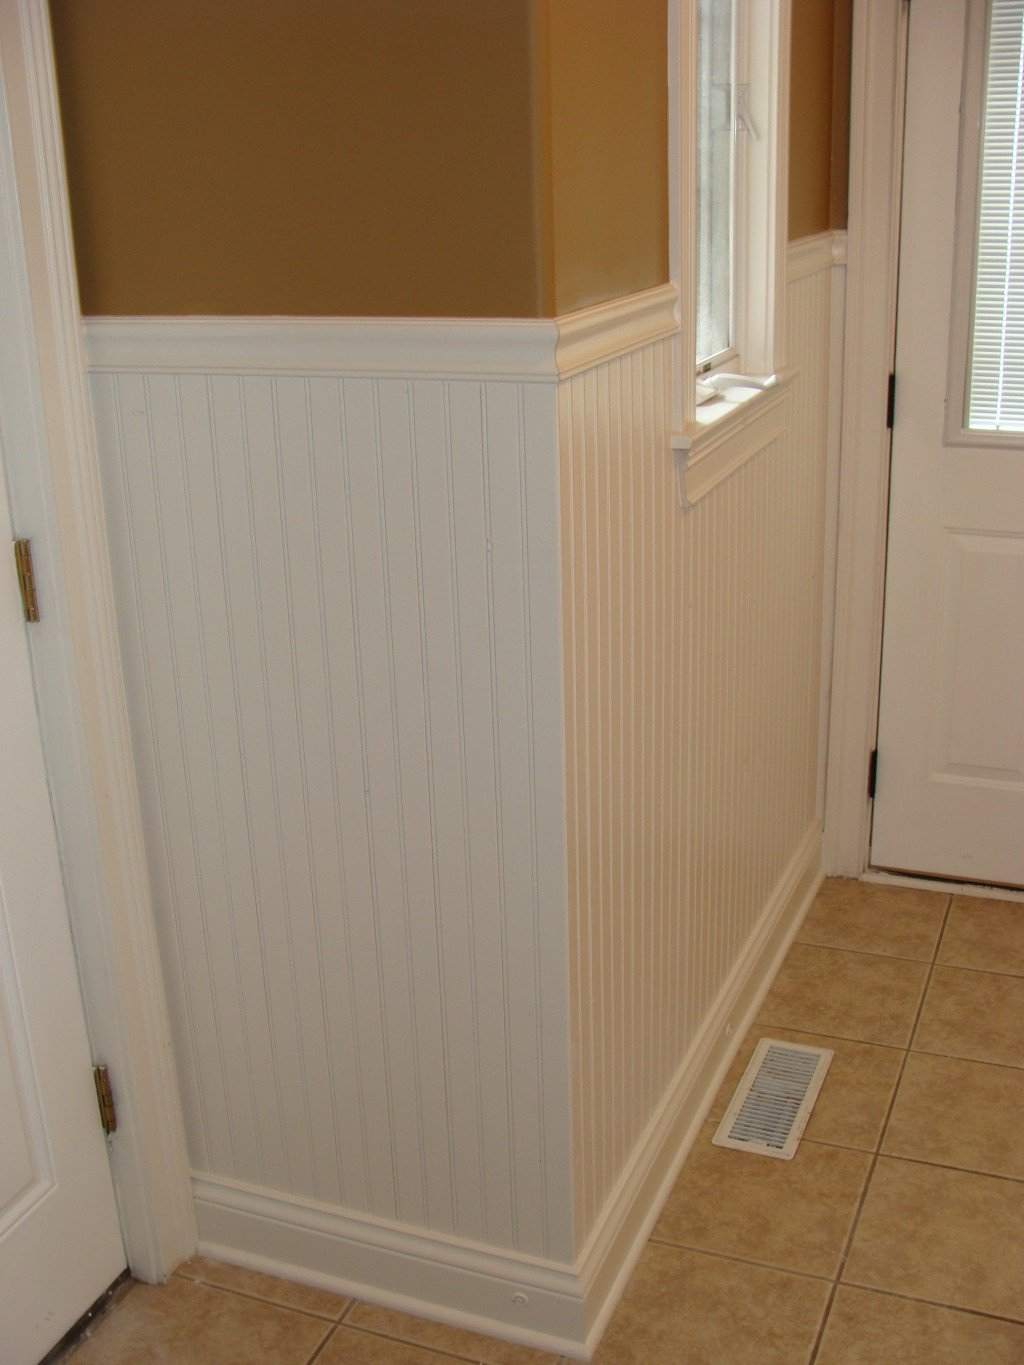 Tip Painting Paneling Dengarden Painting Wood Paneling Without Sanding